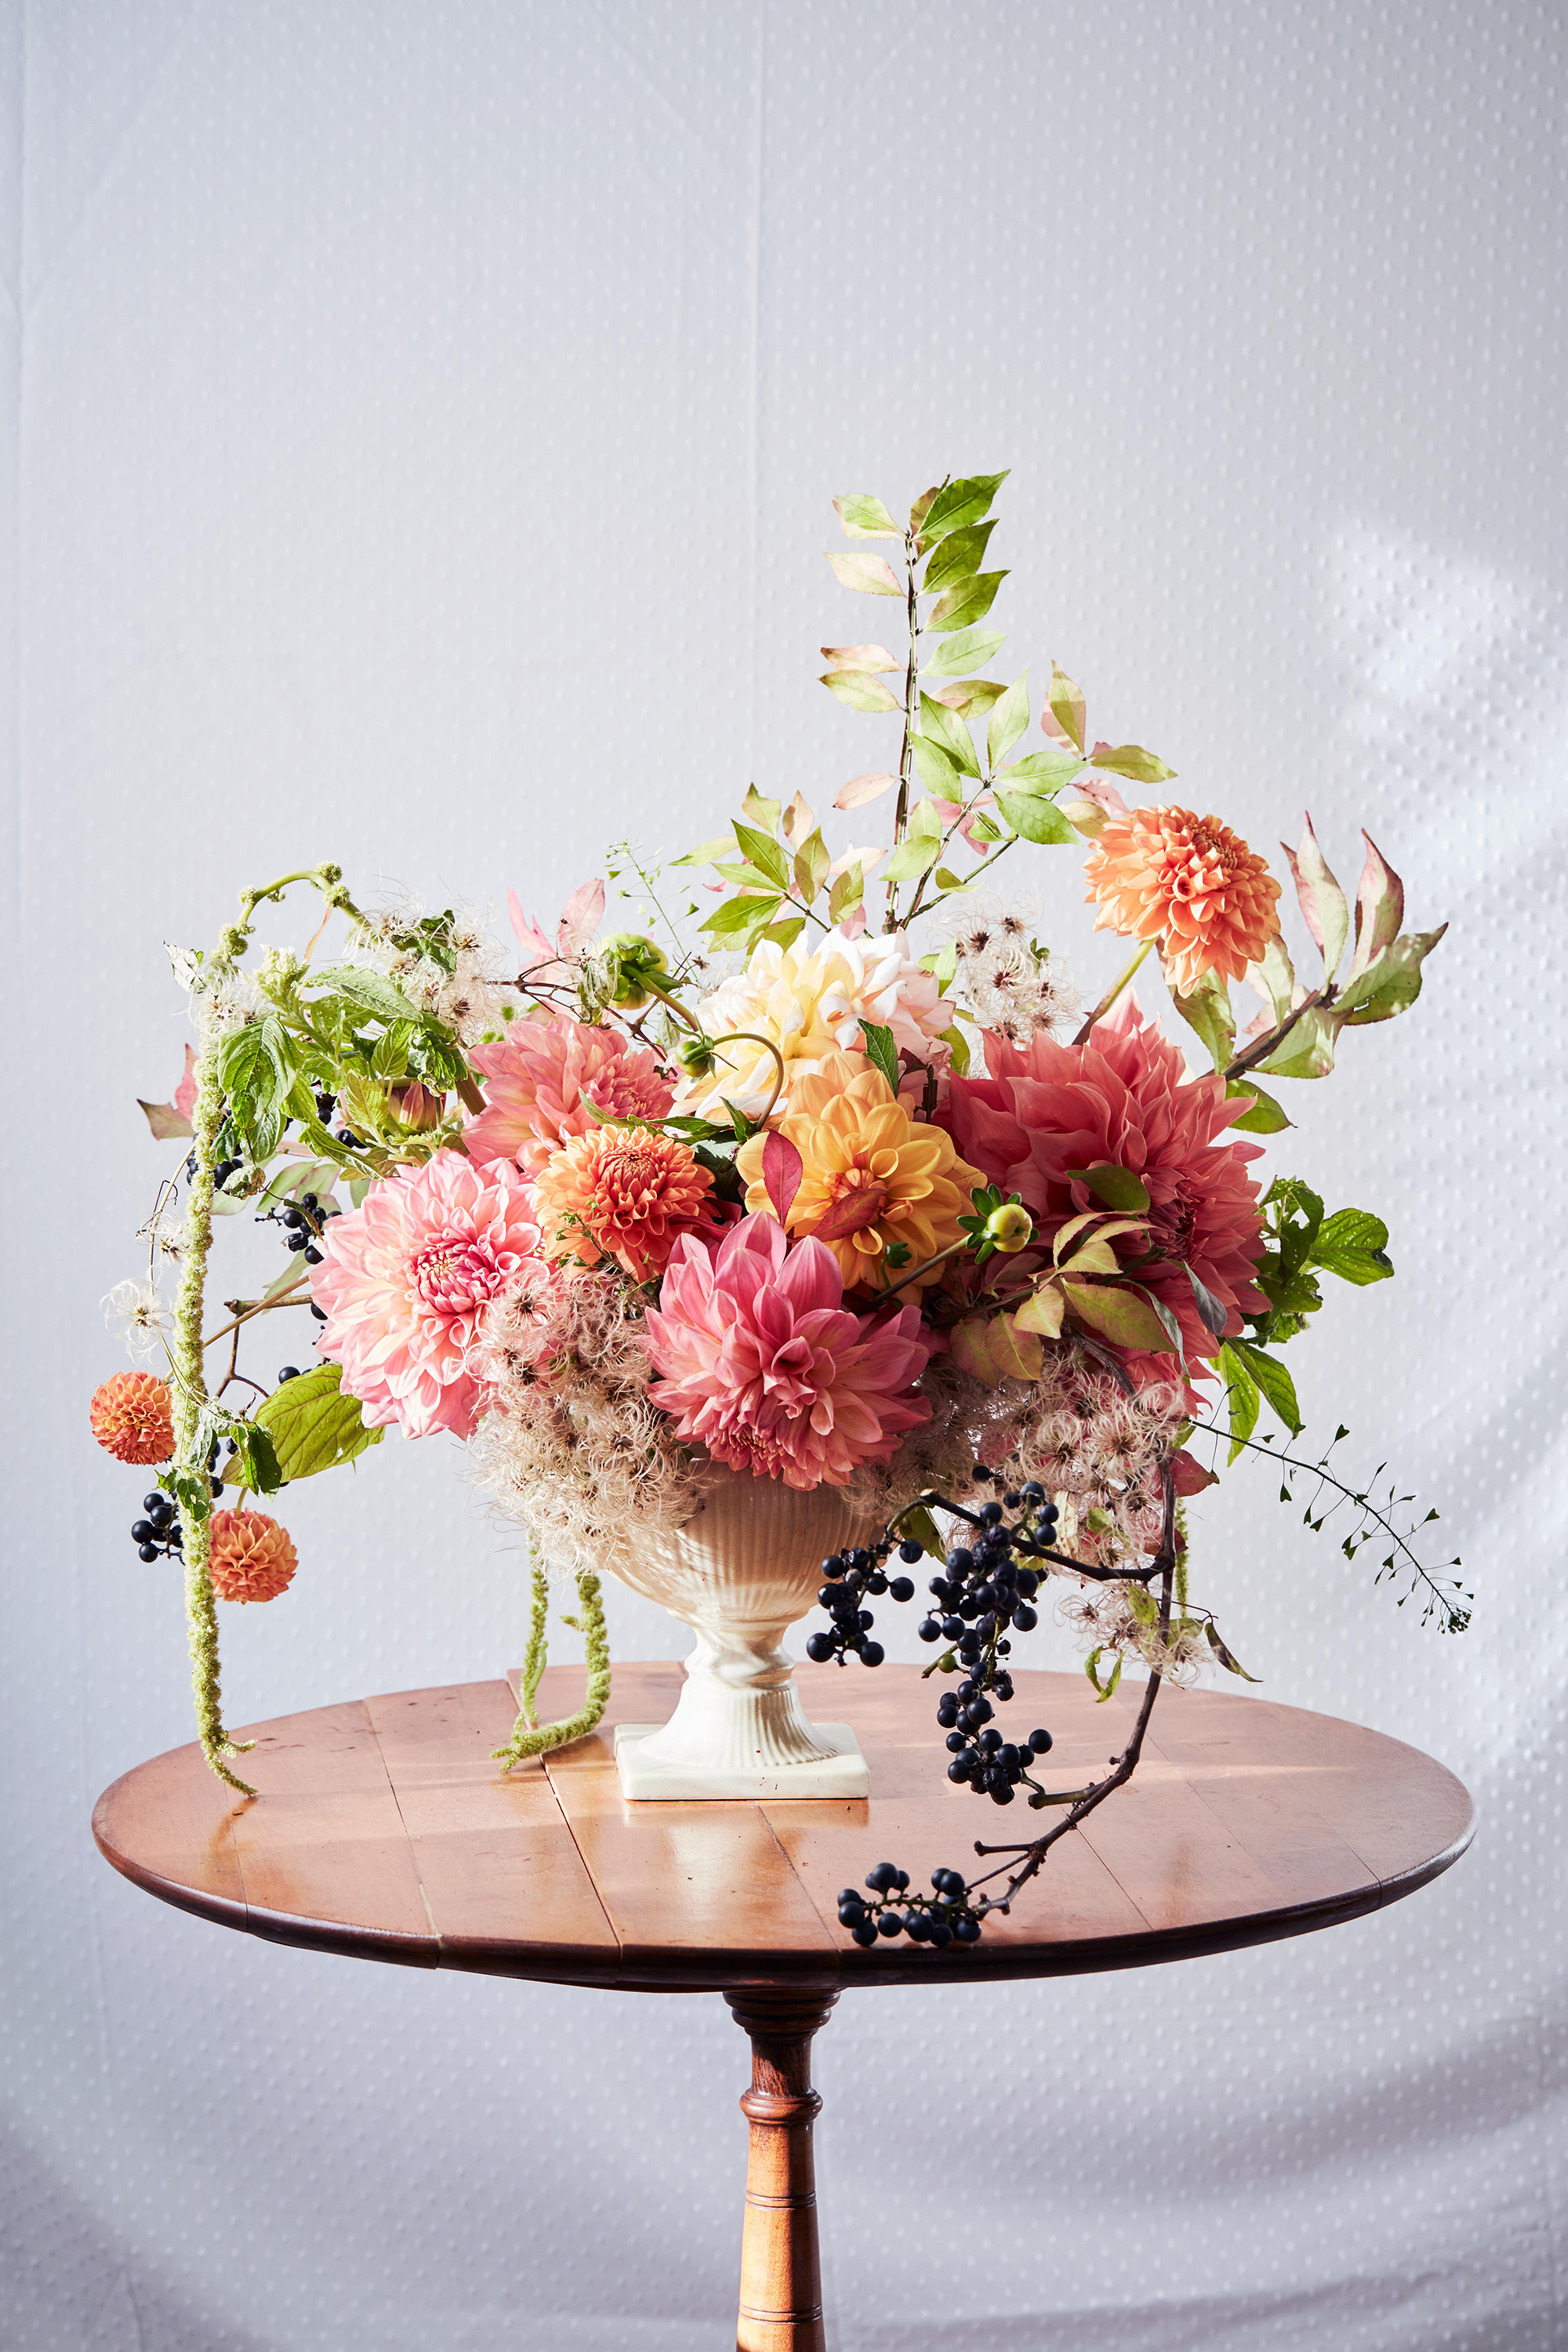 Floral arrangement on a table